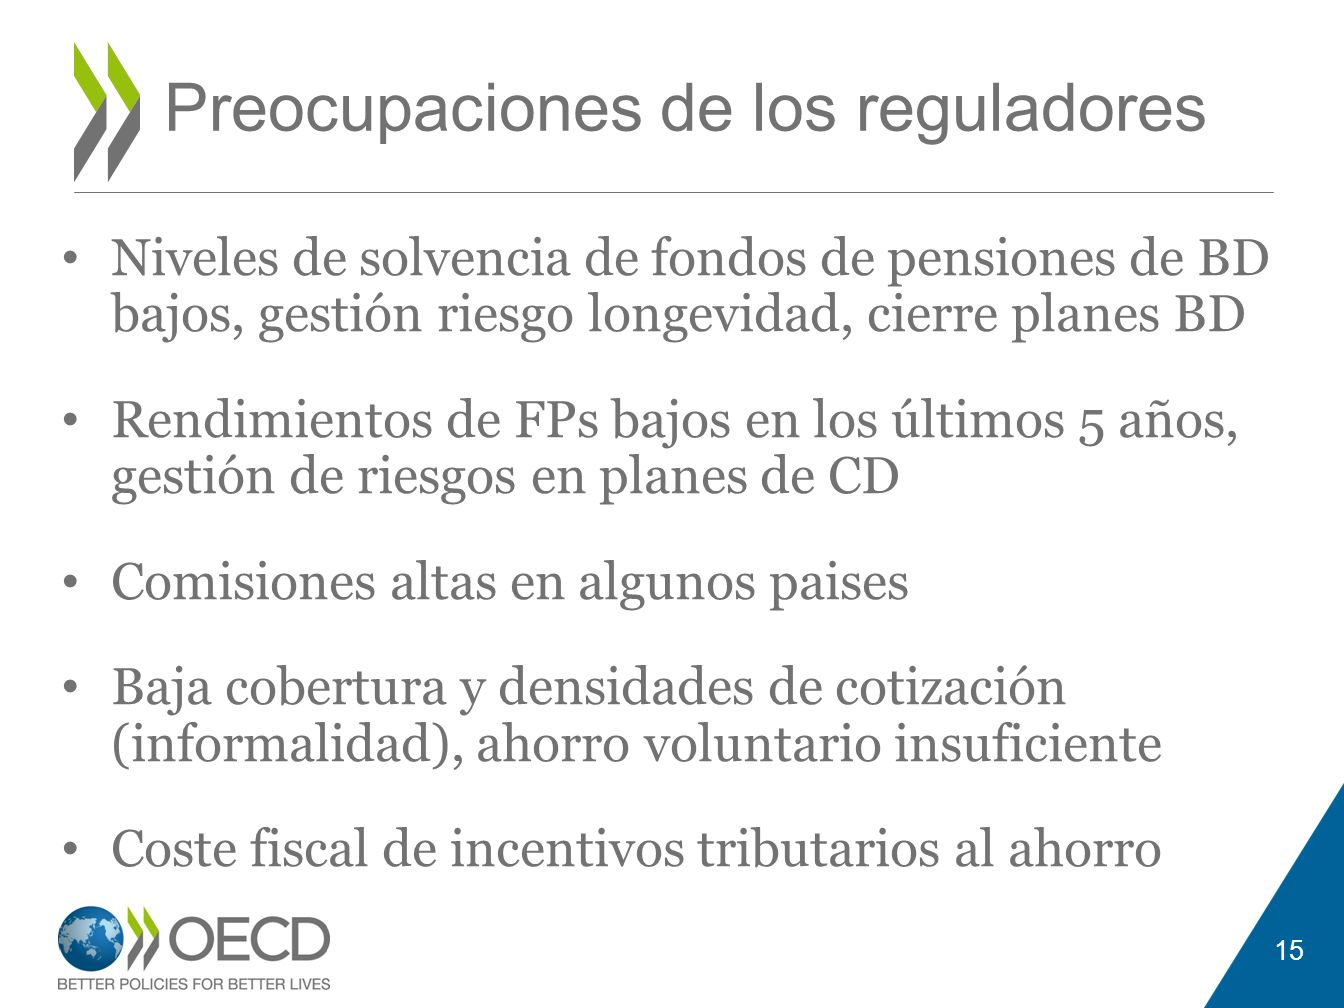 Preocupaciones de los reguladores